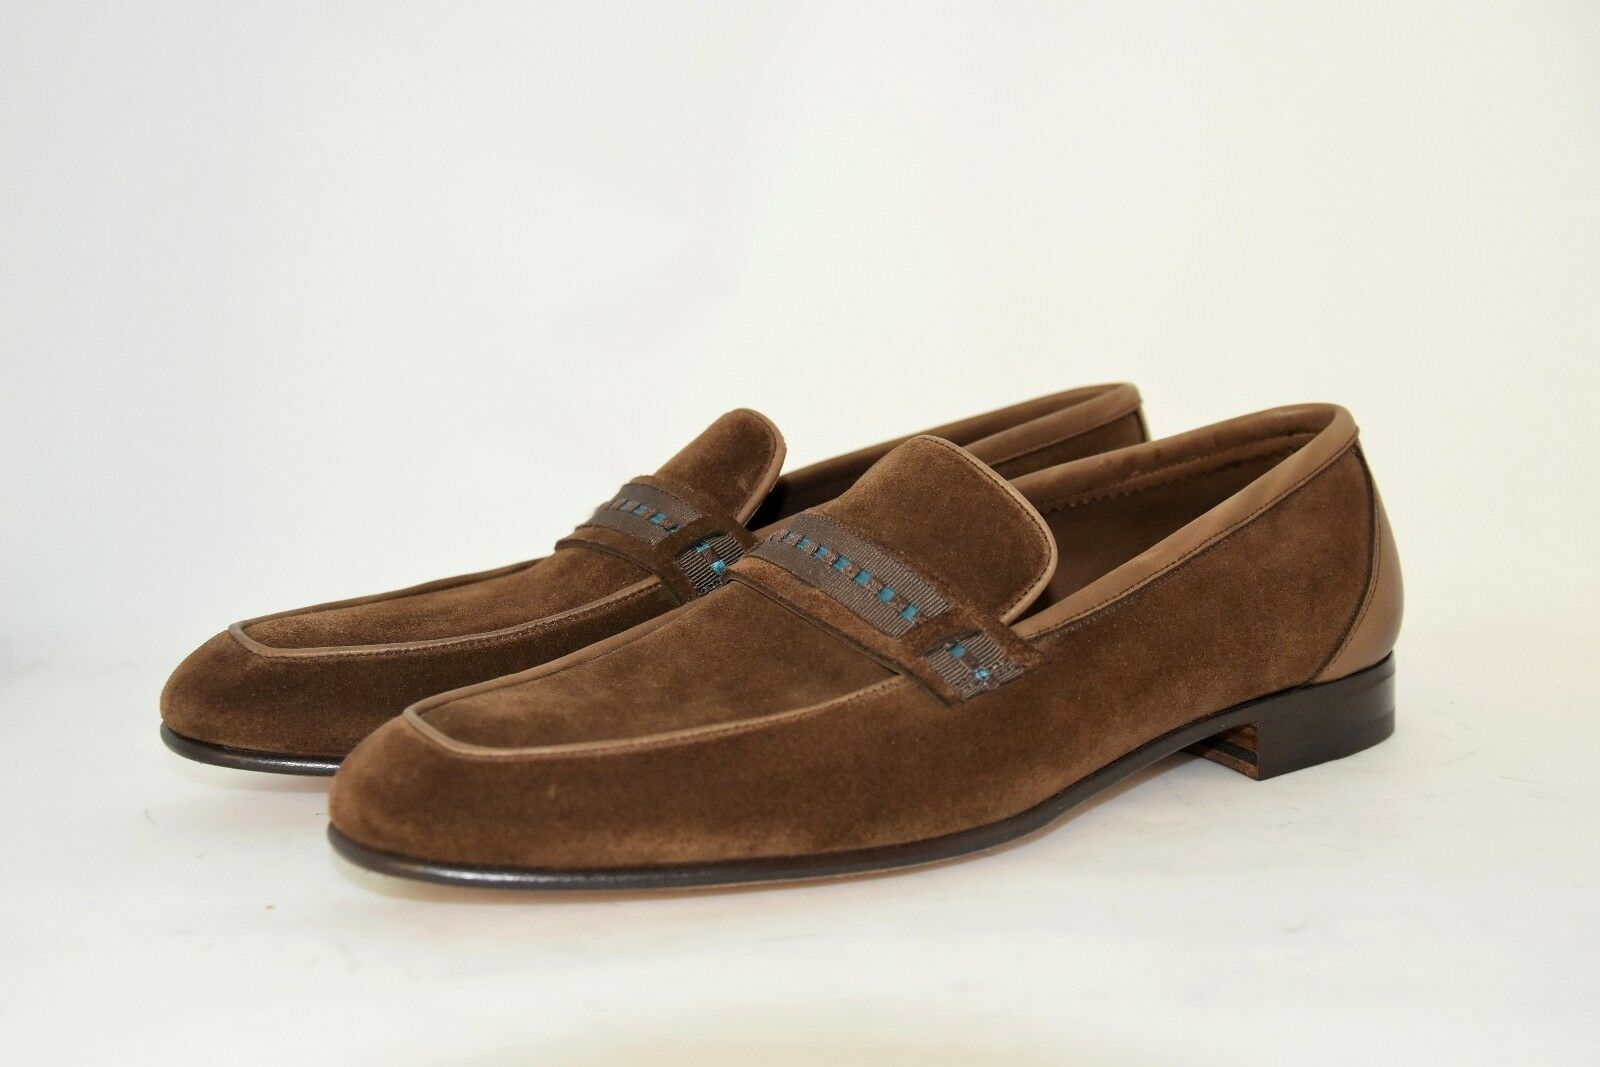 MAN-8eu-9usa-PENNY LOAFER-BROWN LOAFER-BROWN LOAFER-BROWN SUEDE-MOCASSINO-CAMOSCIO TDM-LEATHER SOLE 54a6b4